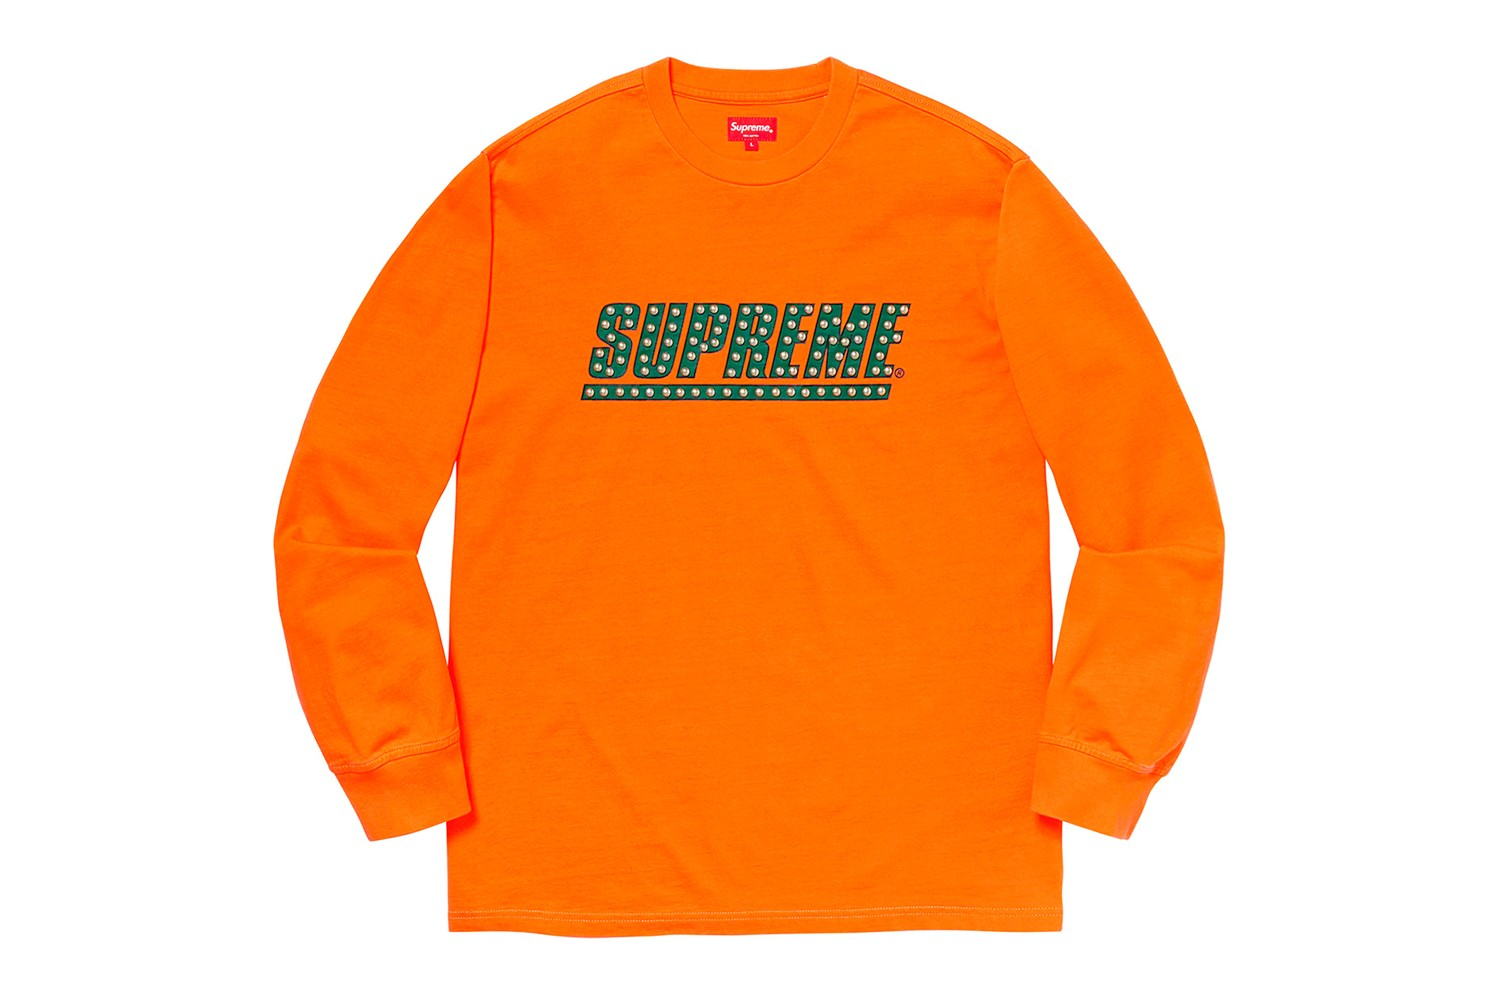 Supreme Spring Summer 2020 Week 1 Drop List Palace Week 2 adidas Golf Babylon LA Cerberus USA Billionaire Boys Club ICECREAM GHOST Stone Island Shadow Project BAPE Coach ROSE IN GOOD FAITH Lil Peep